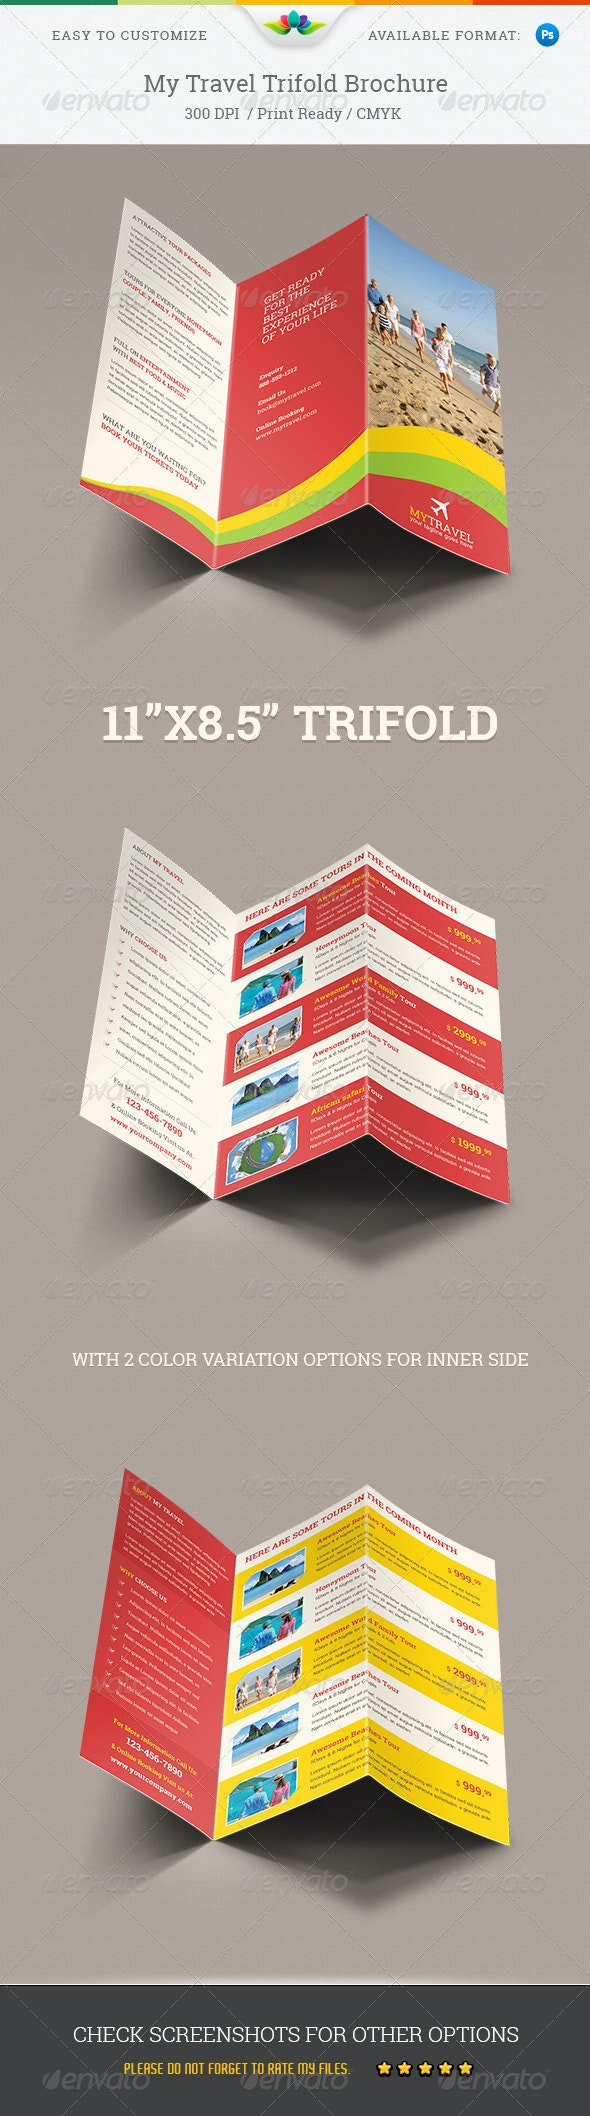 My Travel Trifold Brochure - Corporate Brochures